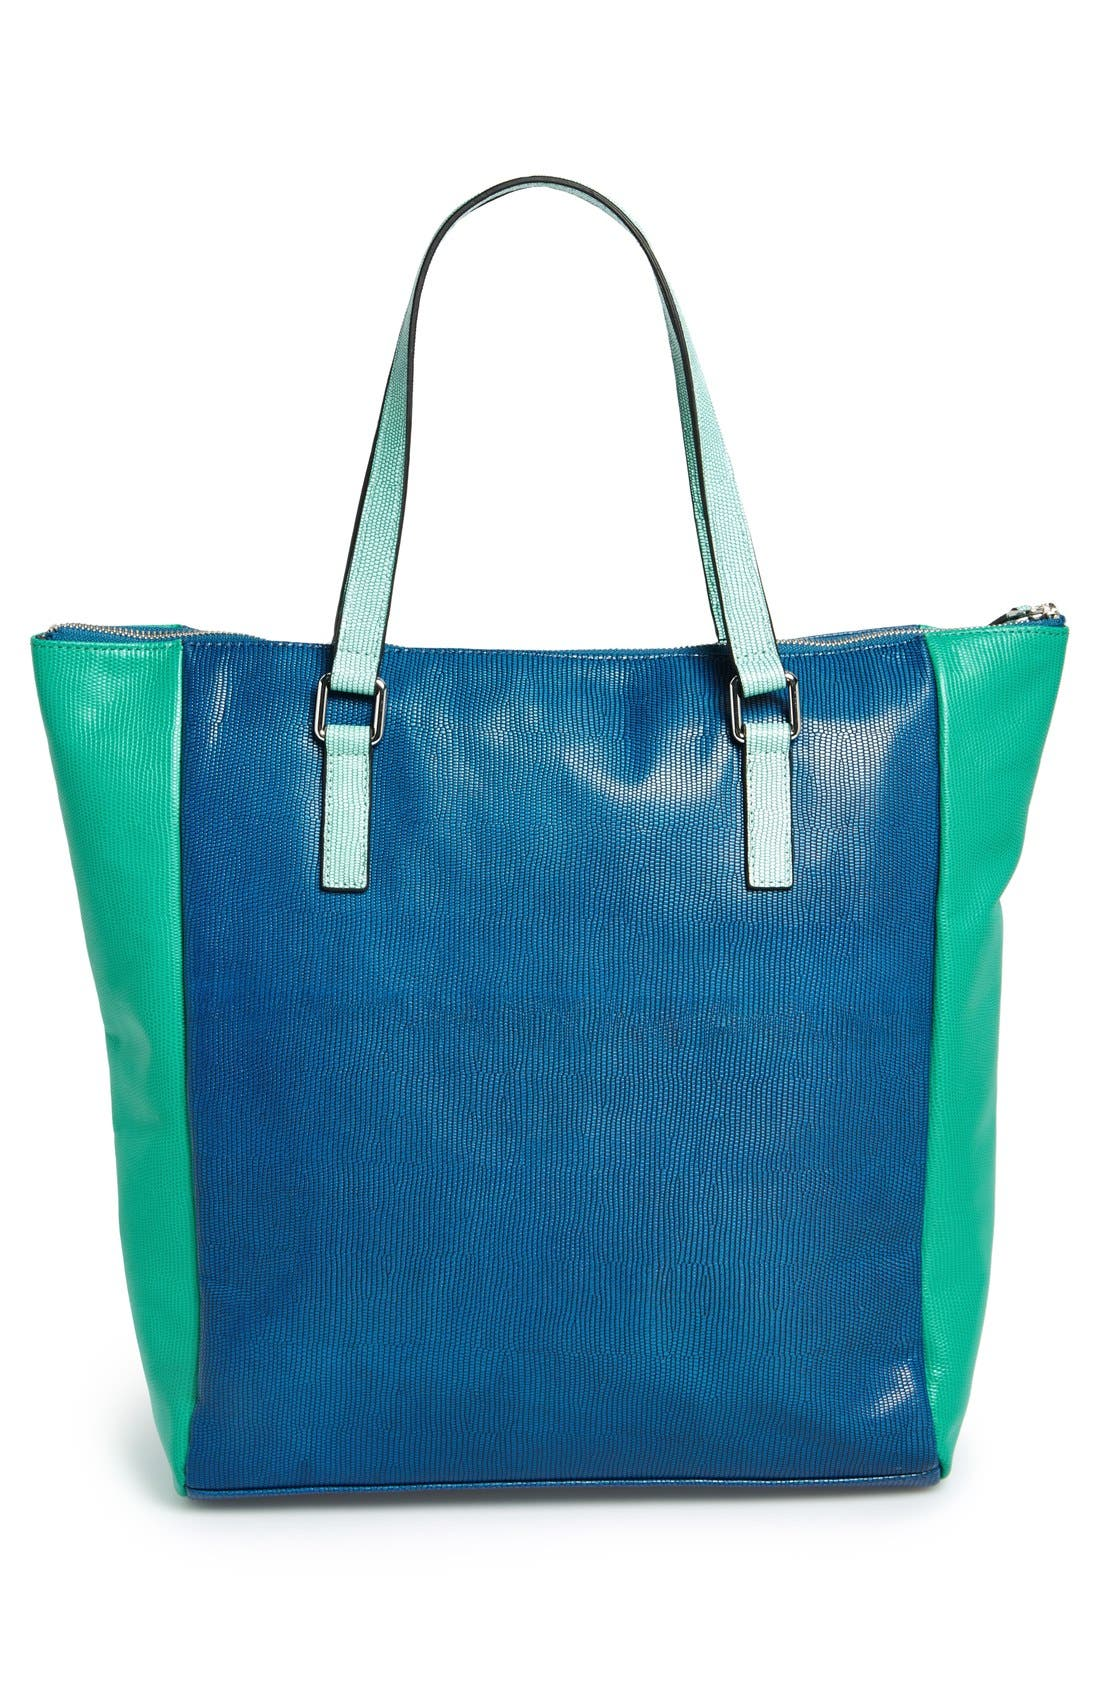 Alternate Image 3  - MARC BY MARC JACOBS 'Take Me' Leather Tote